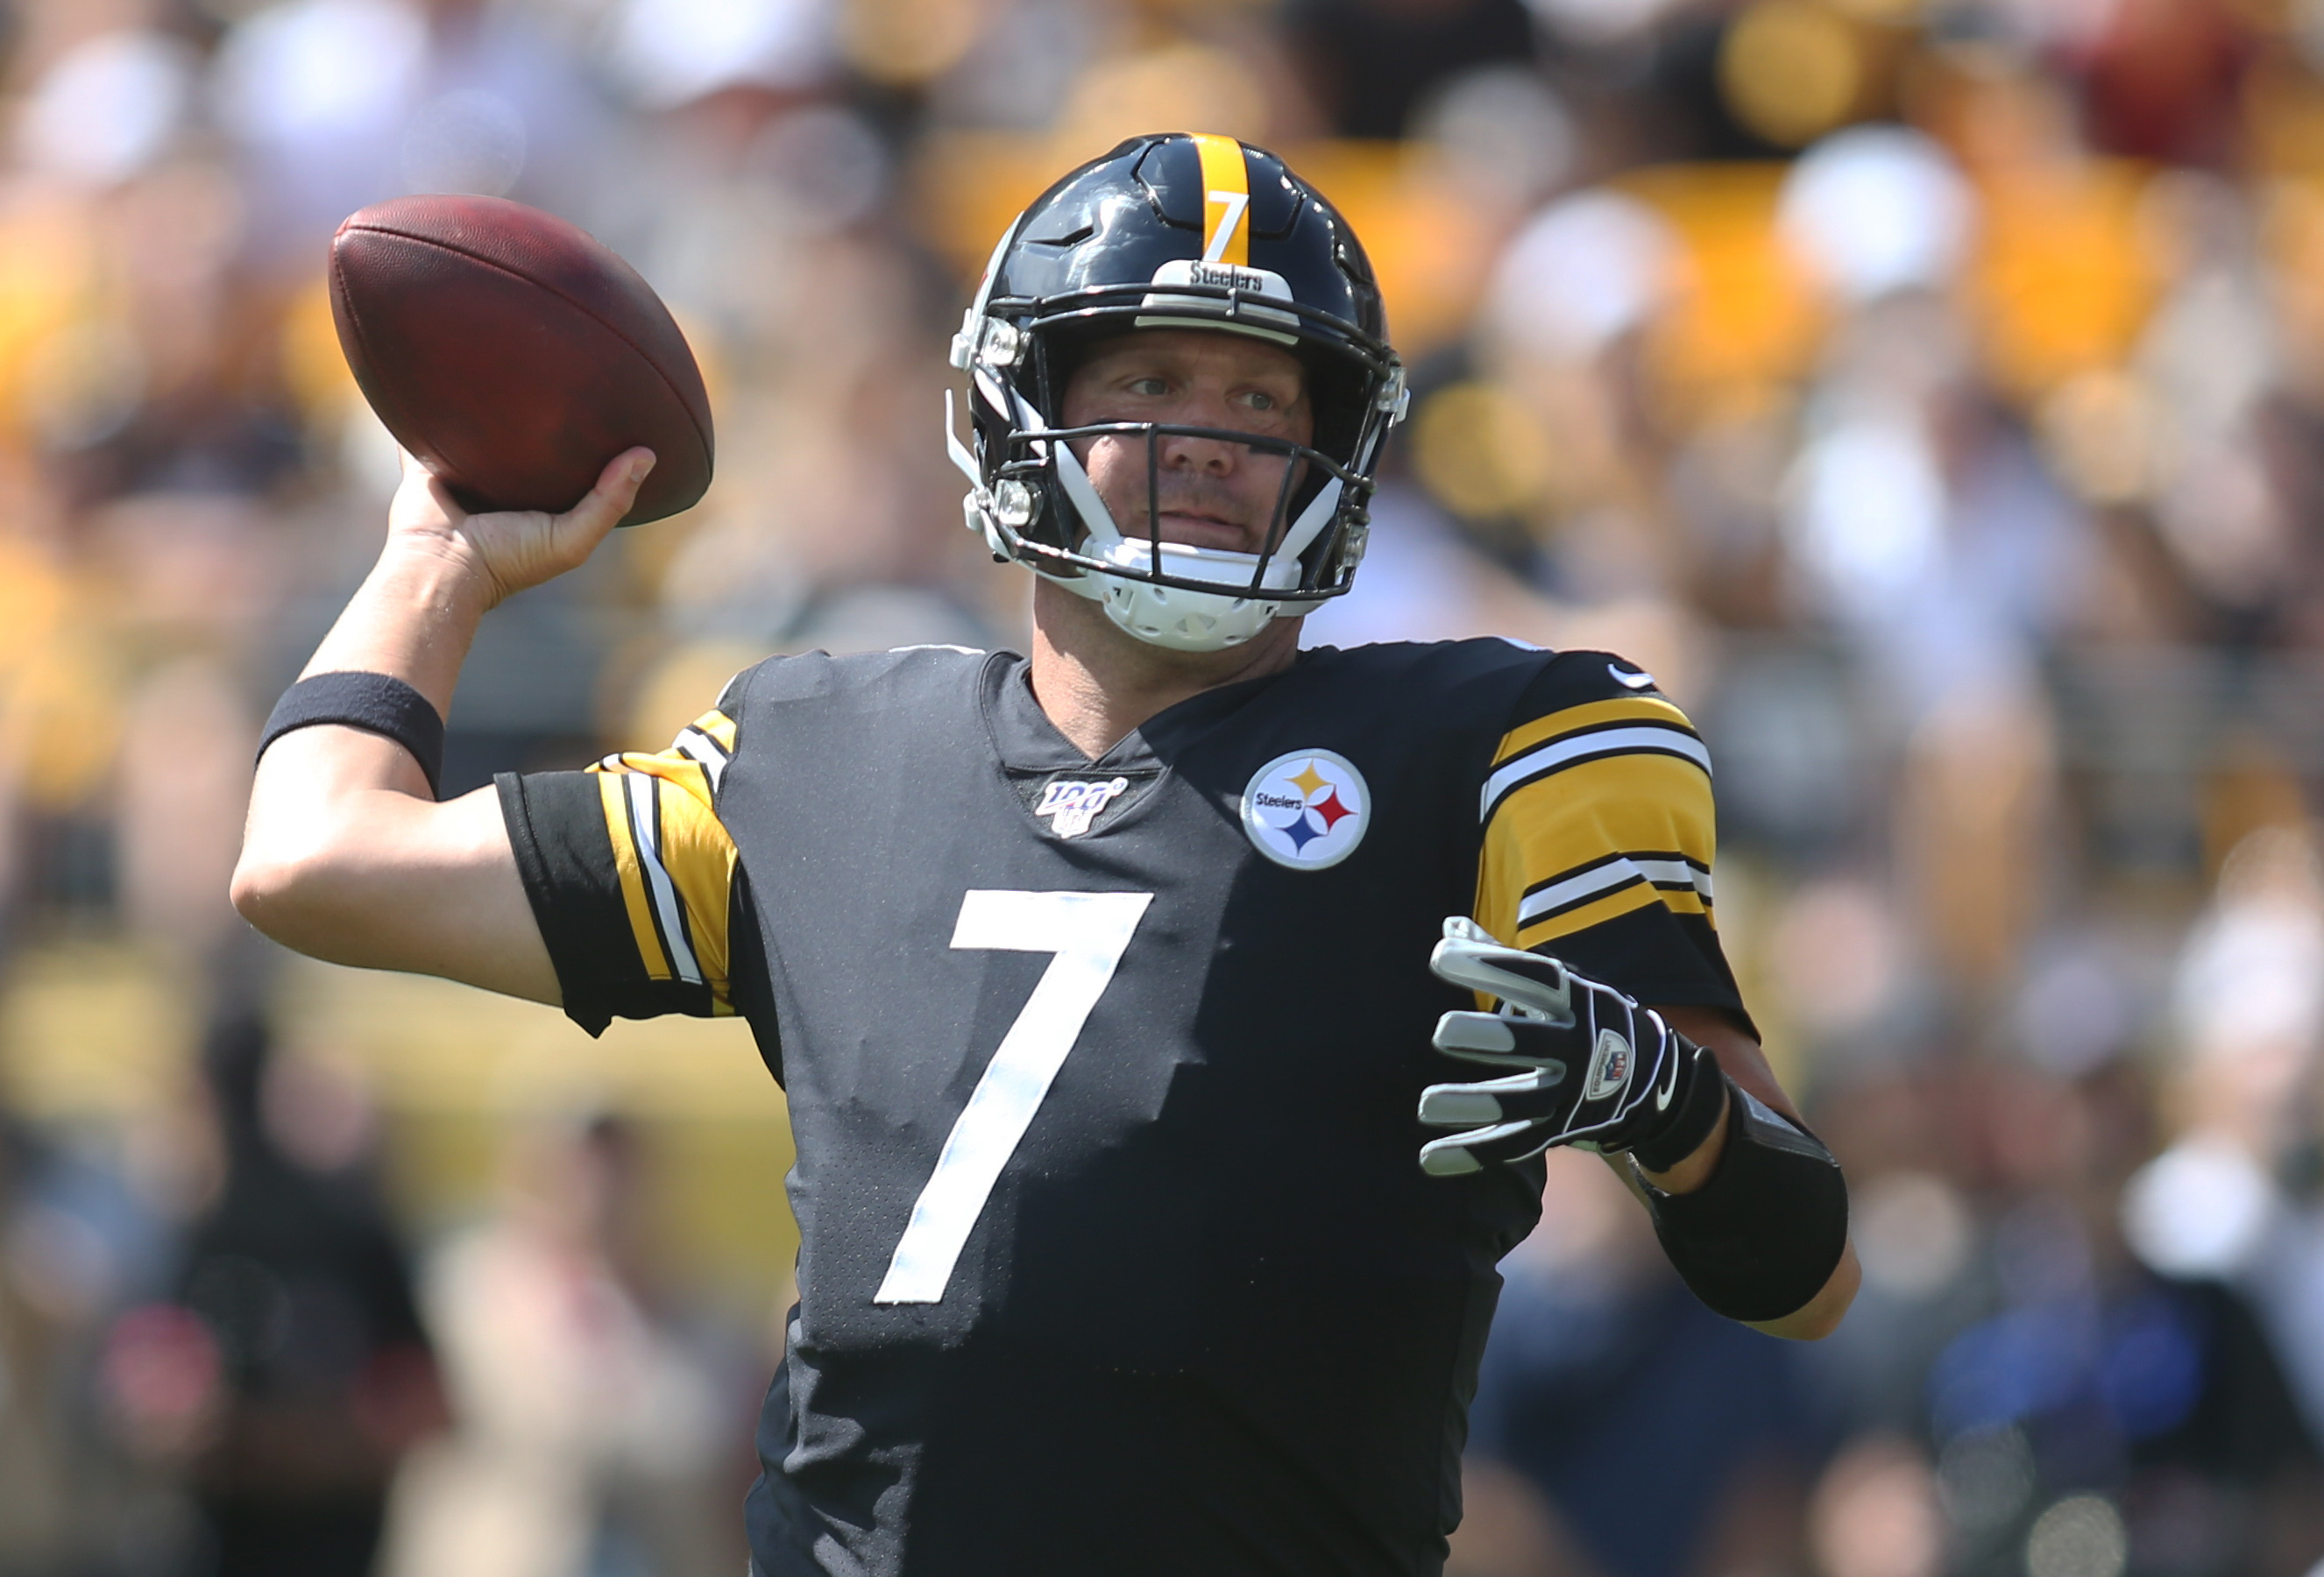 Report: Ben Roethlisberger Expected to be Cleared in 2.5-3 Months